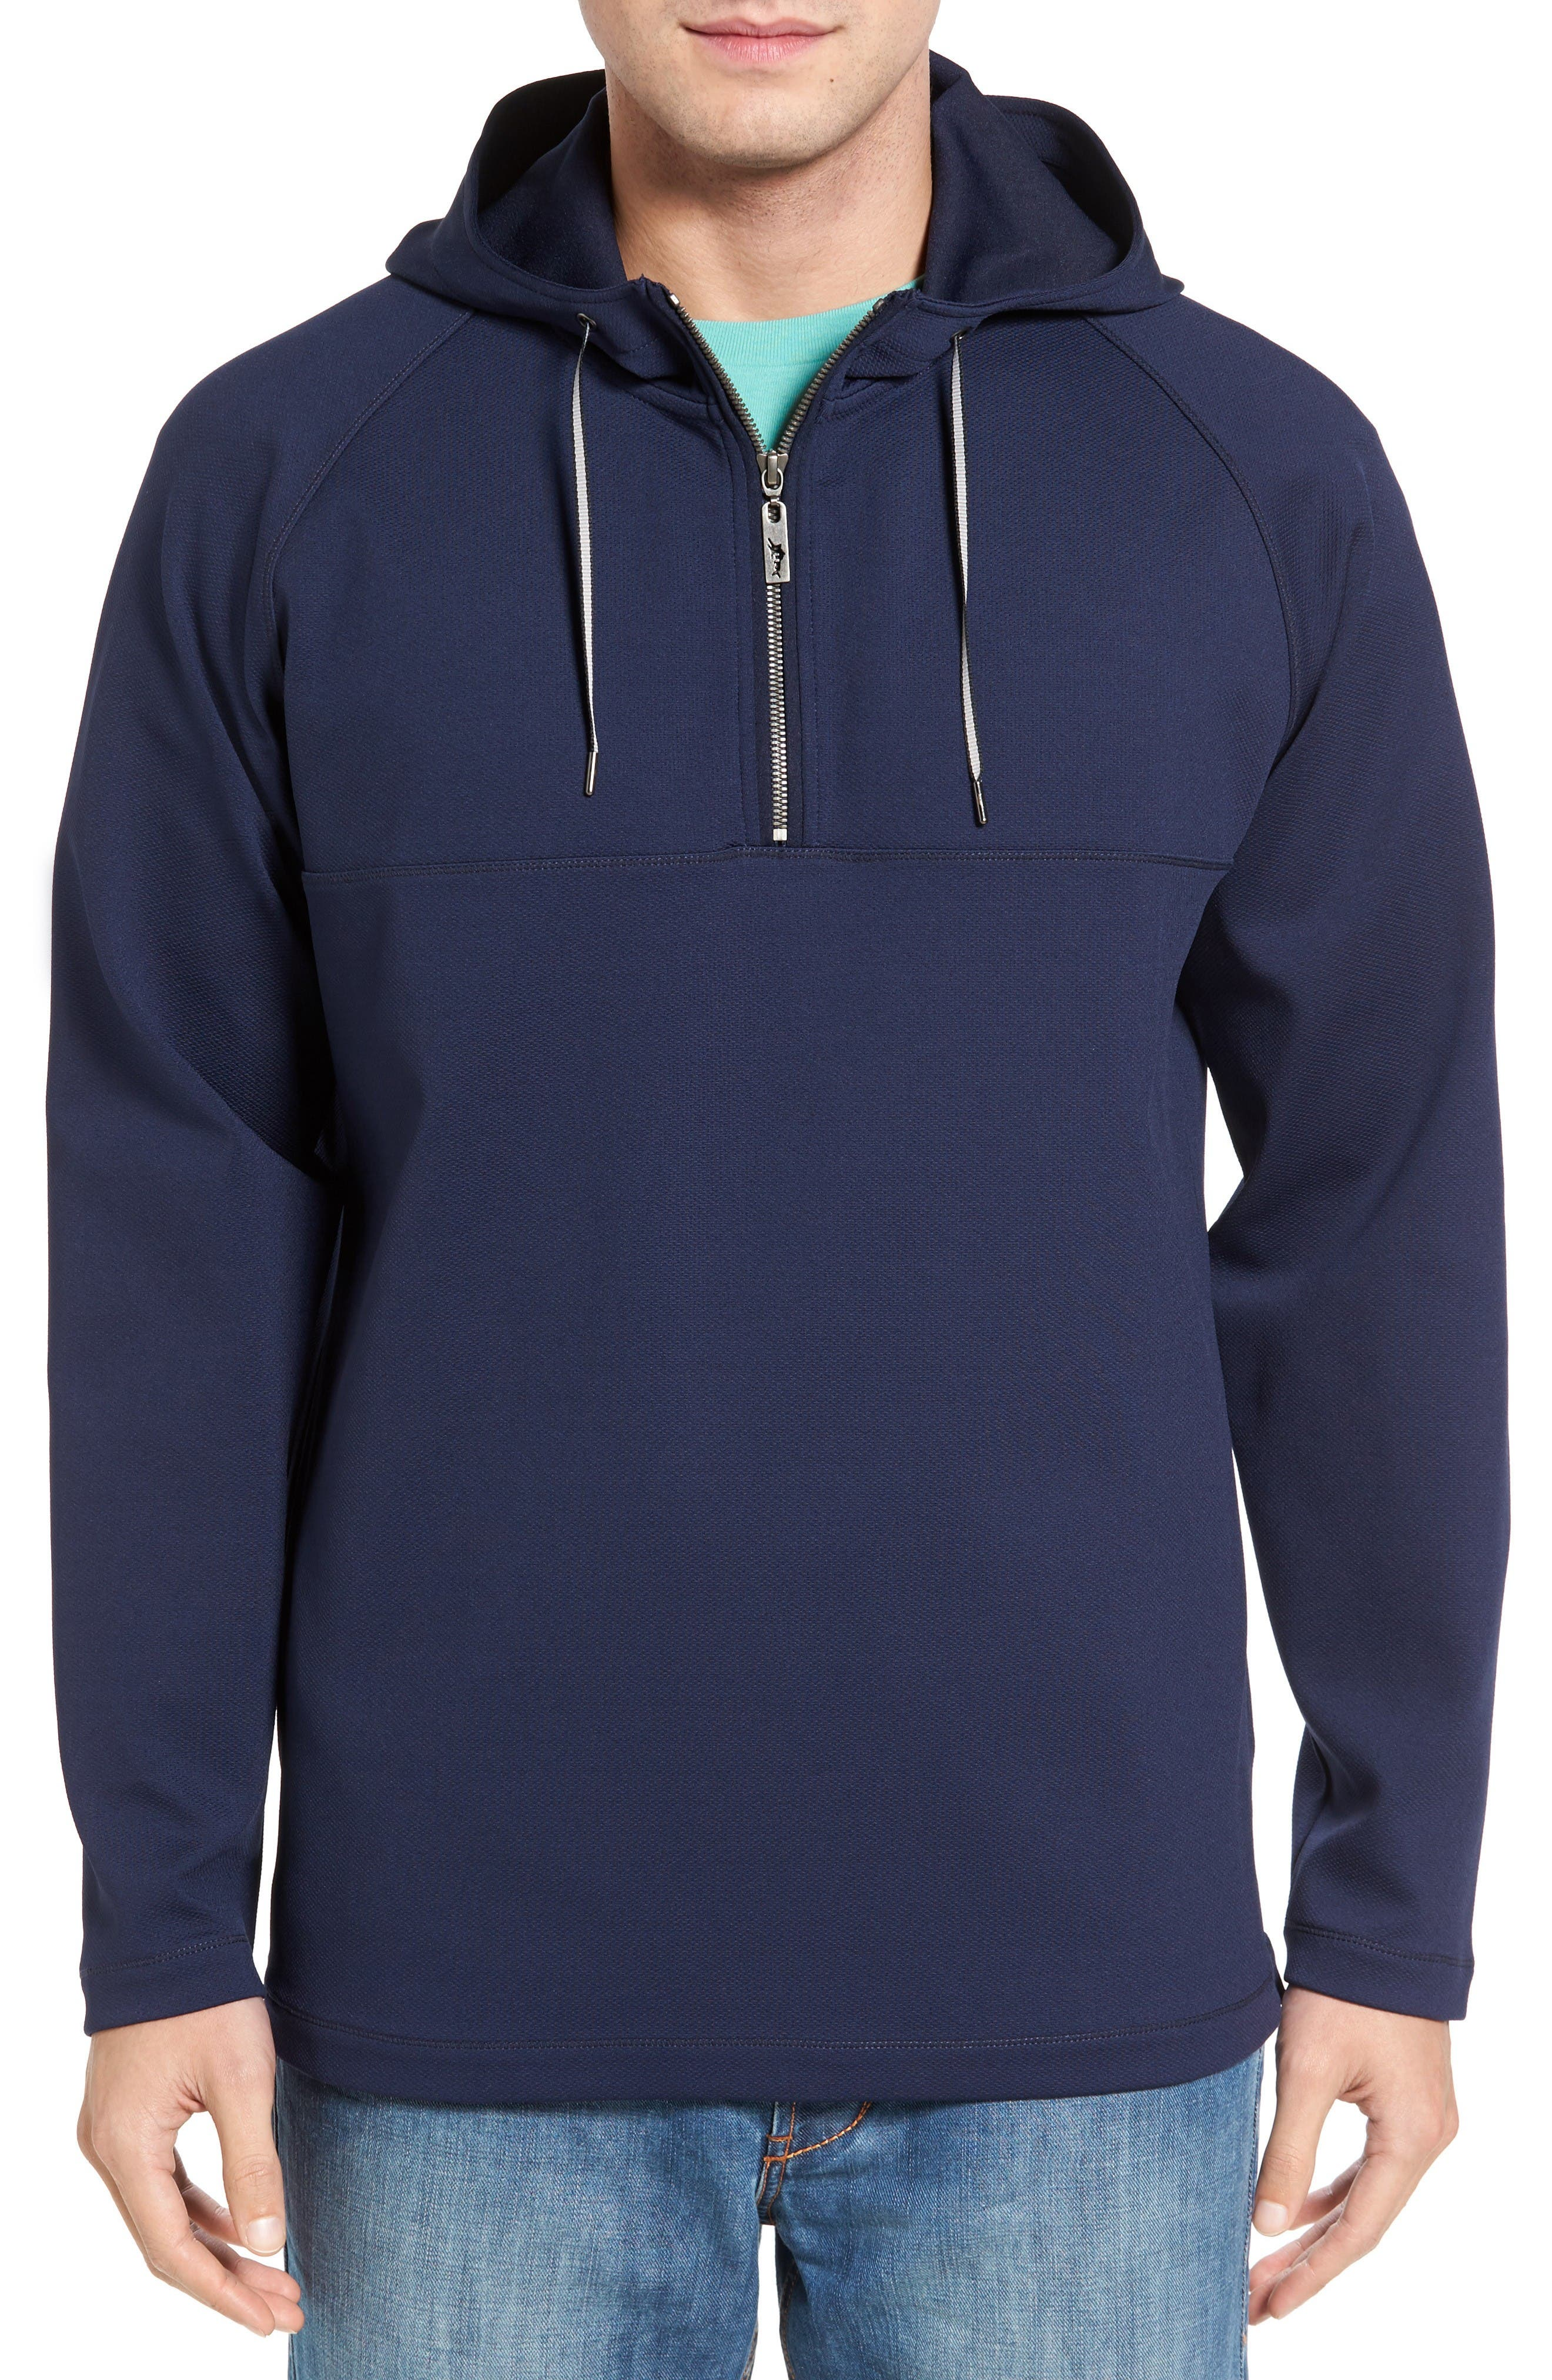 Tommy Bahama Weekend Pro Quarter Zip Hoodie (Big & Tall)